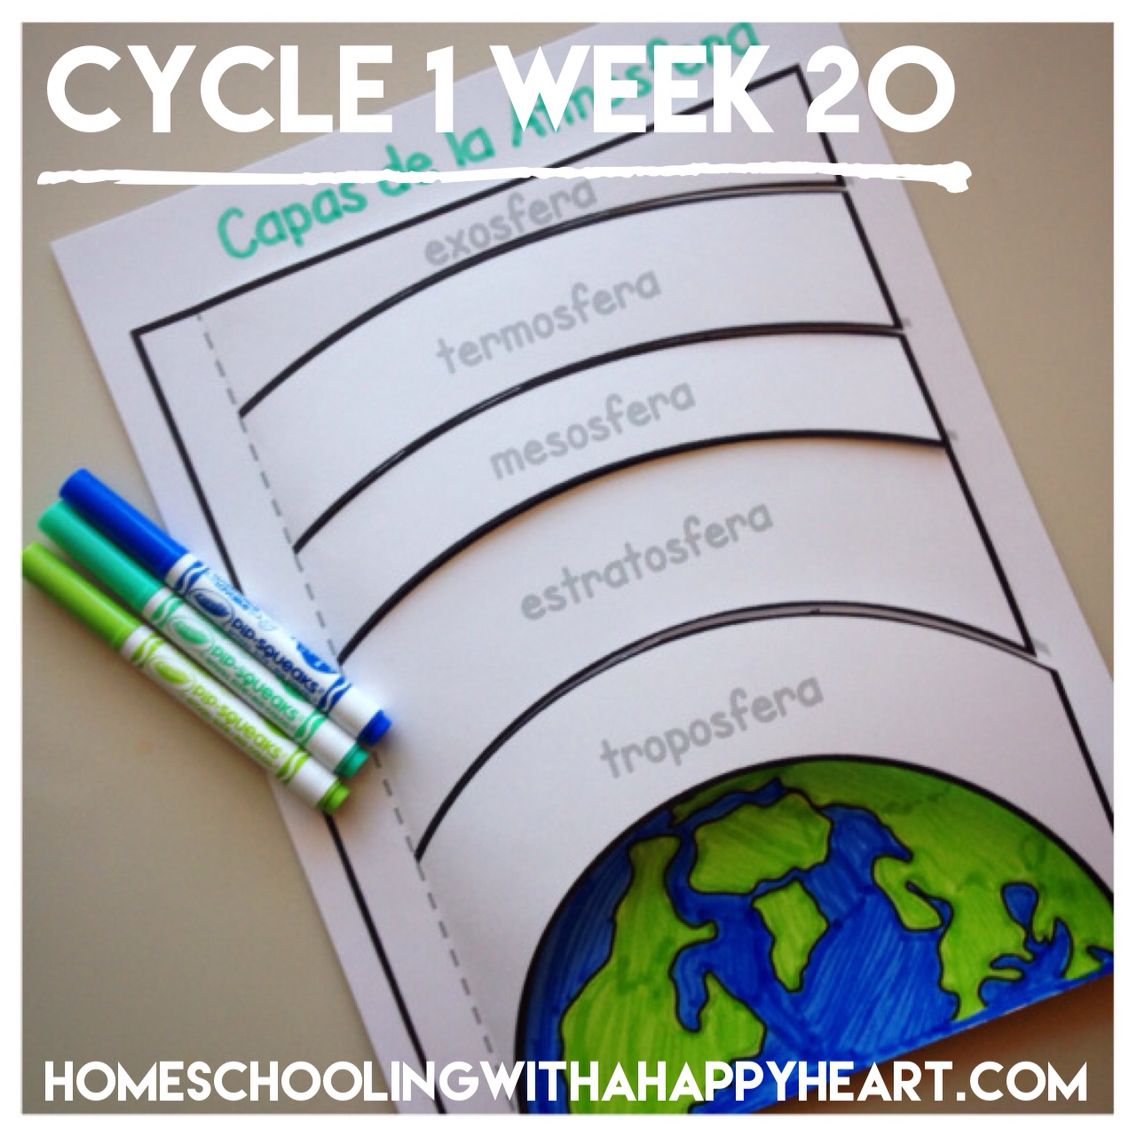 Classical Conversations Cycle 1 Week 20 Resources